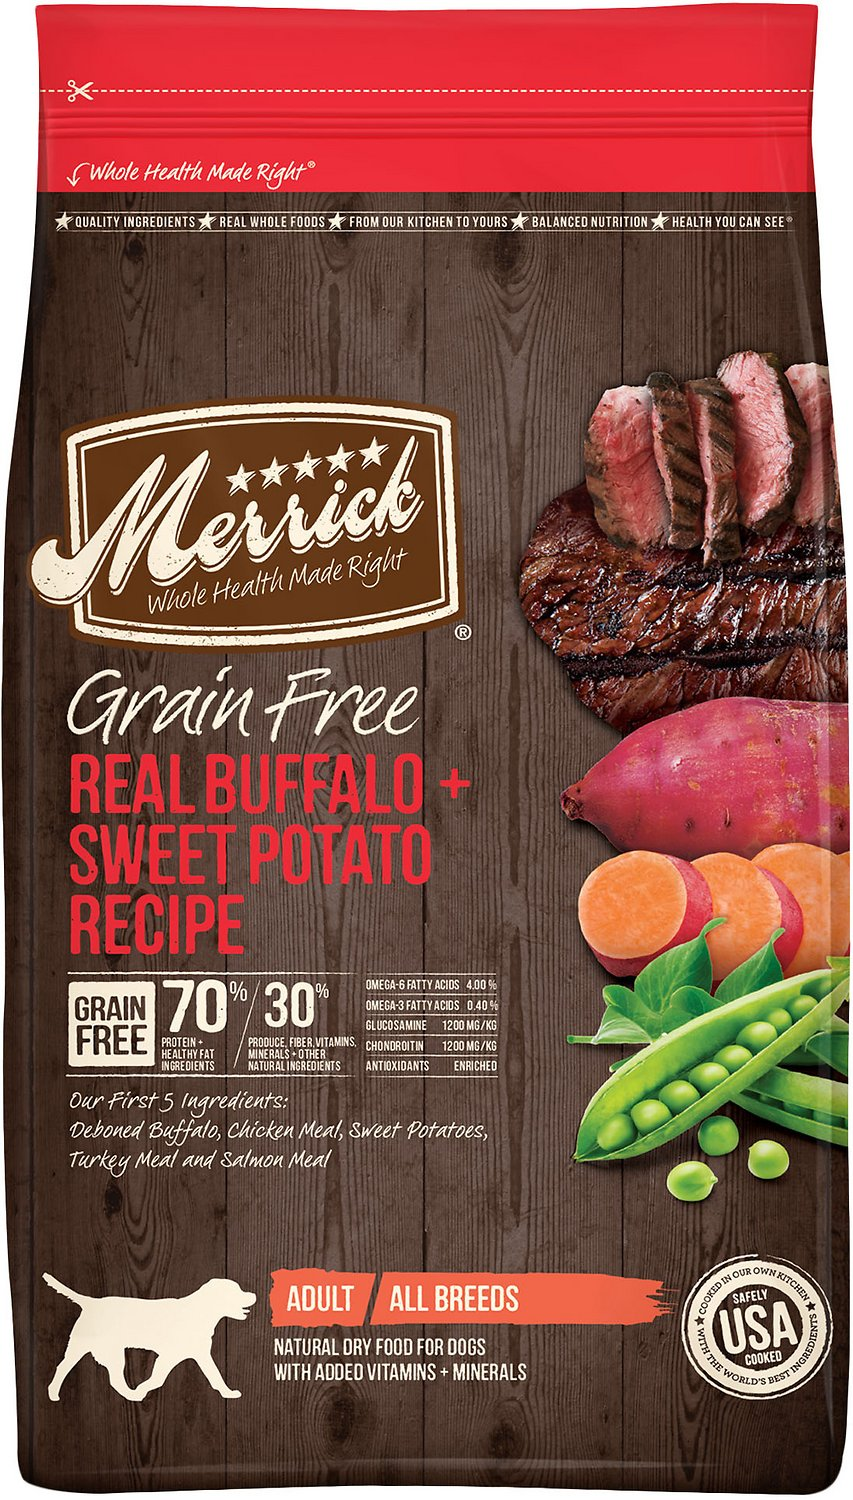 Merrick Grain-Free Real Buffalo + Sweet Potato Recipe Dry Dog Food Image